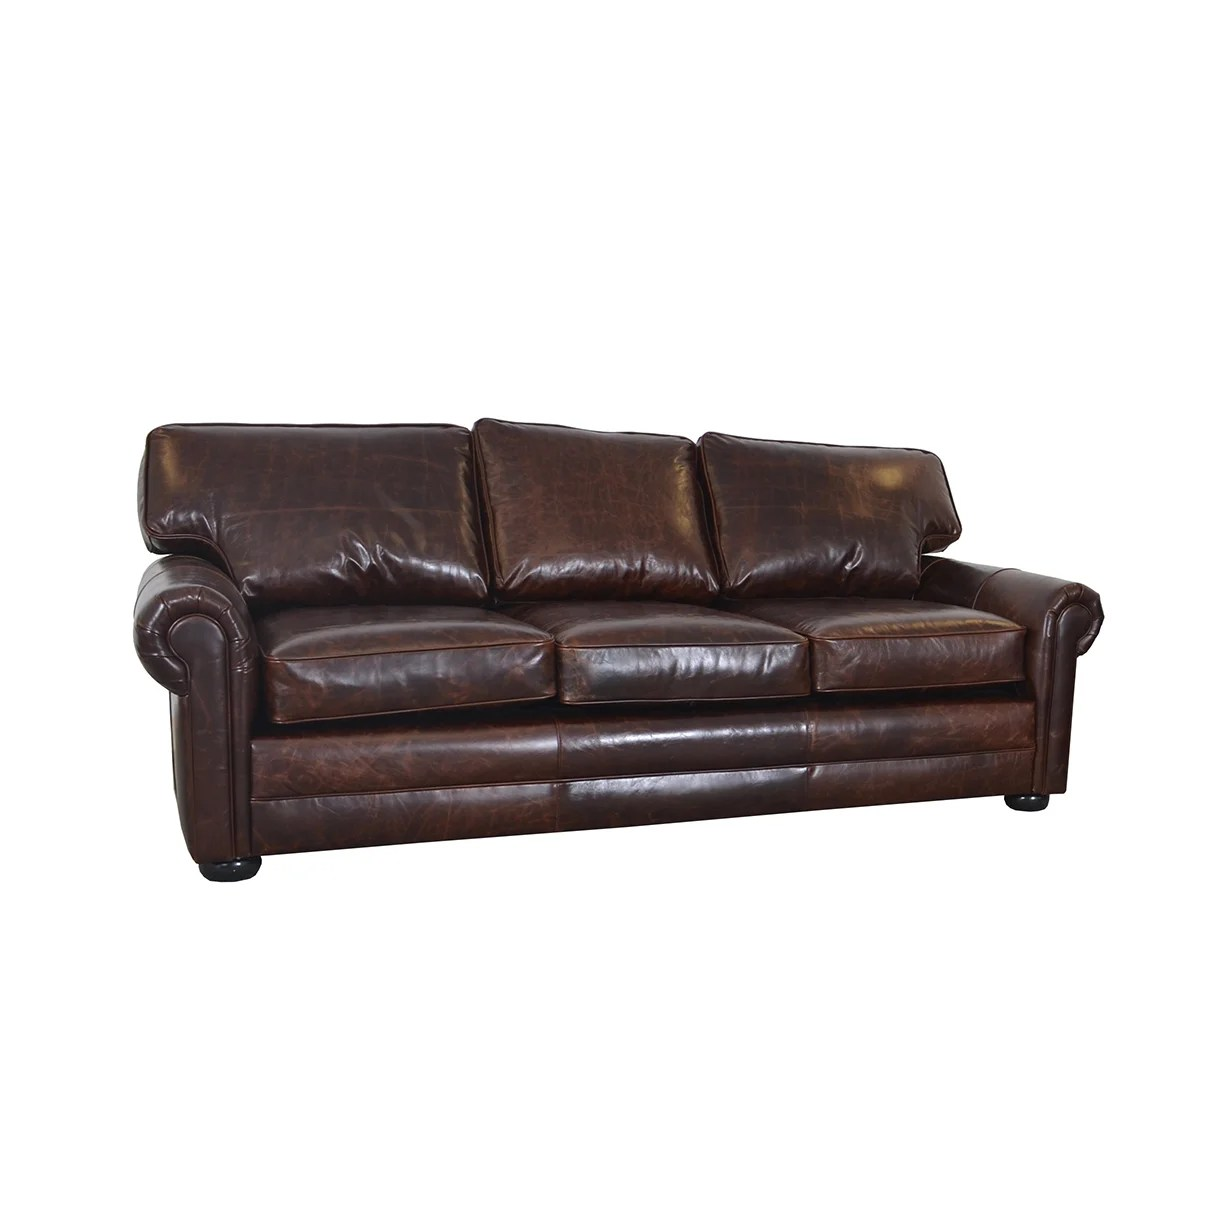 Extra Deep Sofa Extra Deep Leather Sofa 38 Wonderful Gallery Ideas About